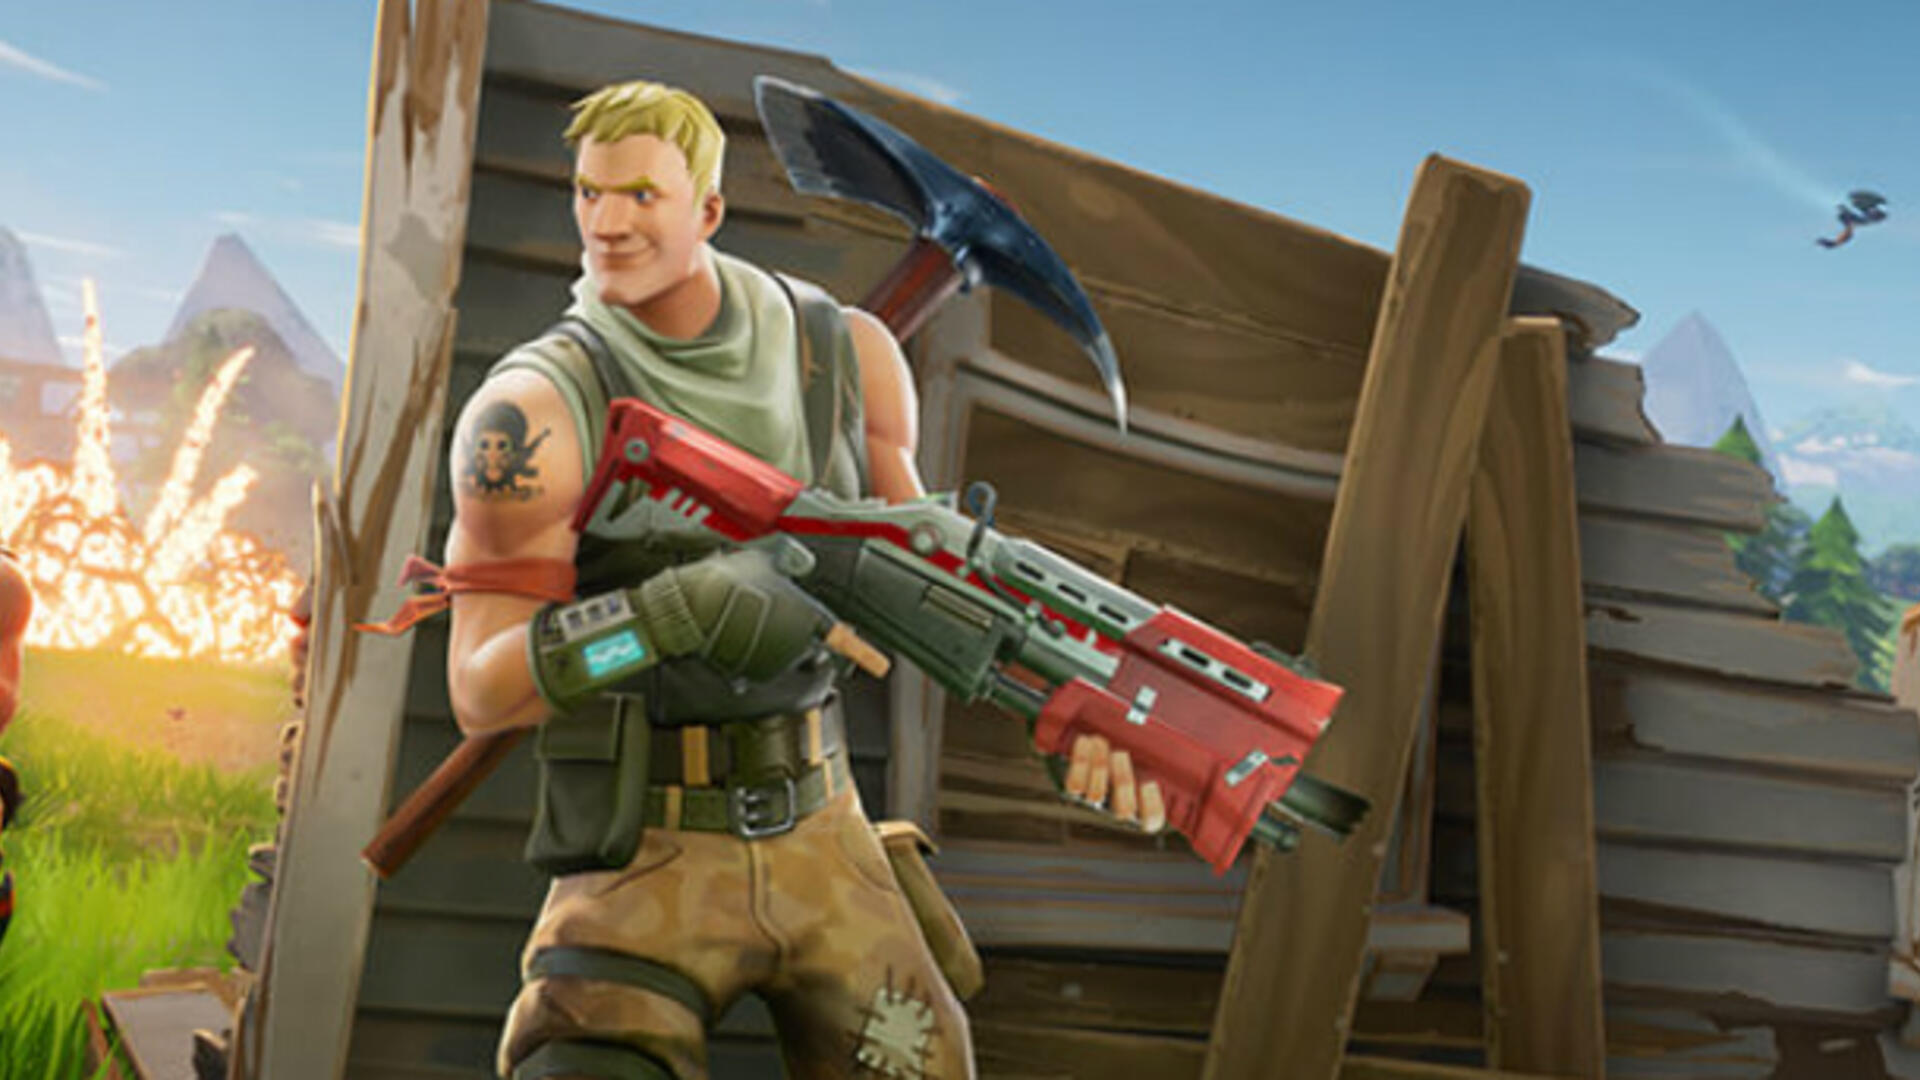 It Turns Out Epic Games is Suing a 14 Year Old for Cheating